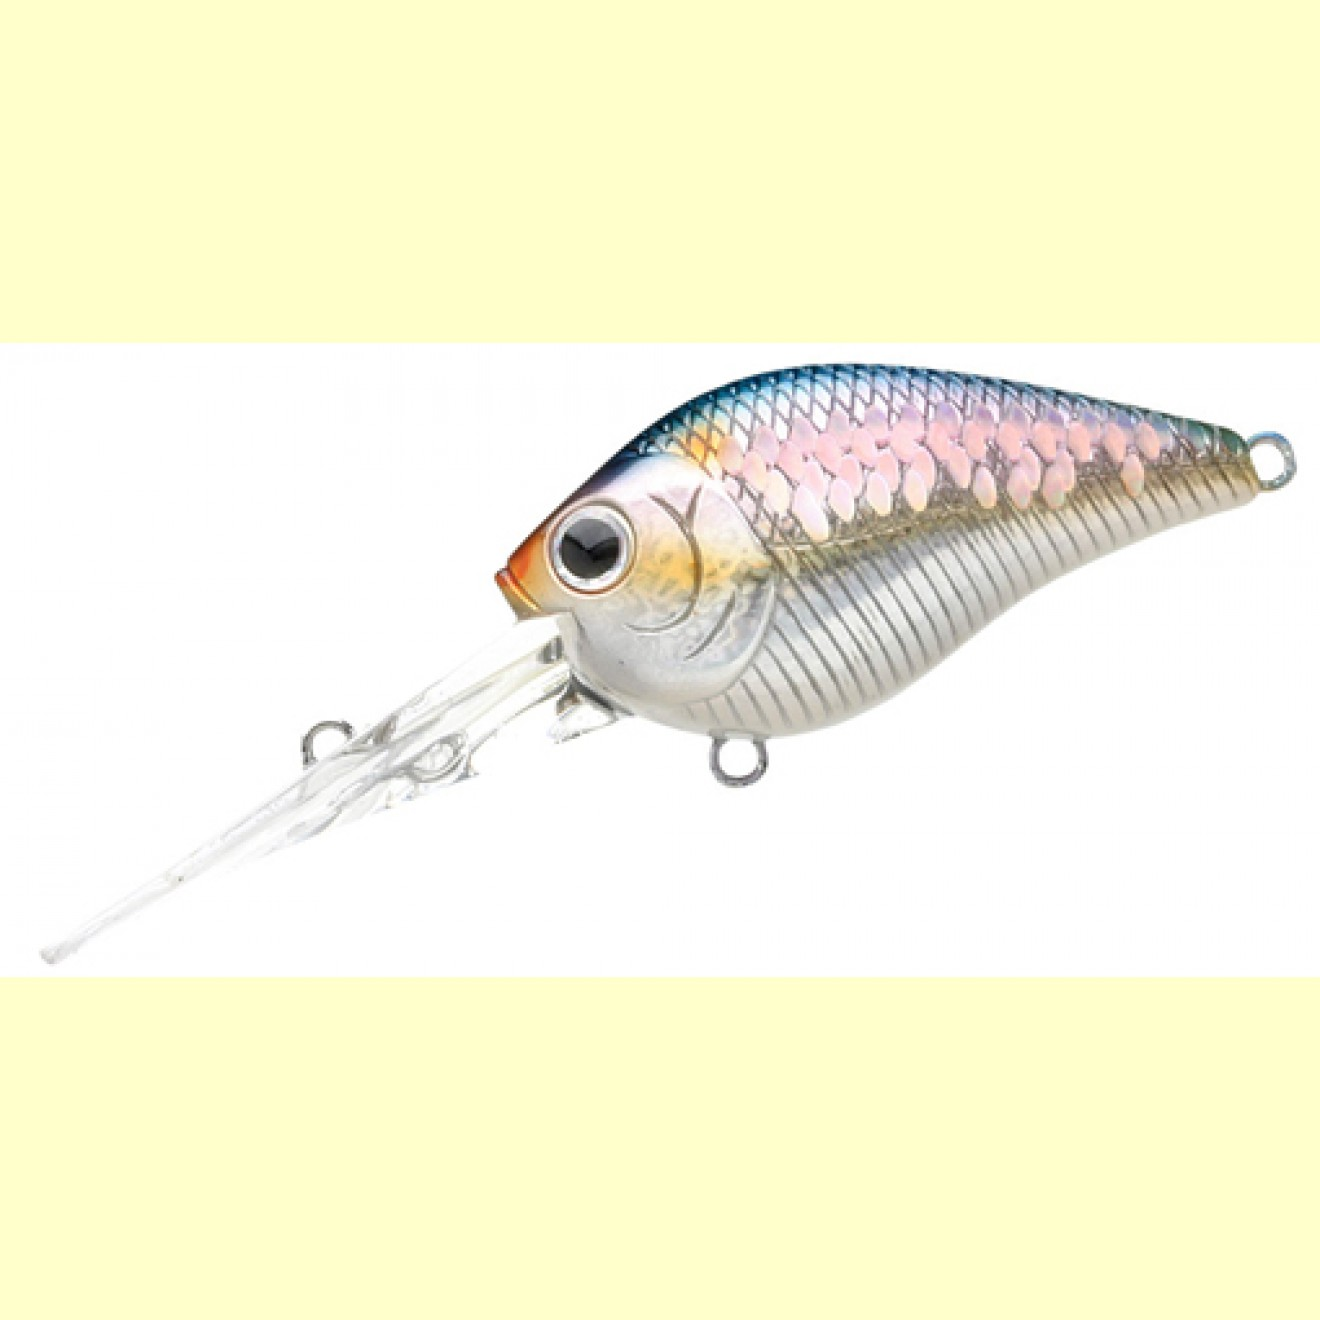 Fat Mini D 7 - MS AMERICAN SHAD - LUCKY CRAFT